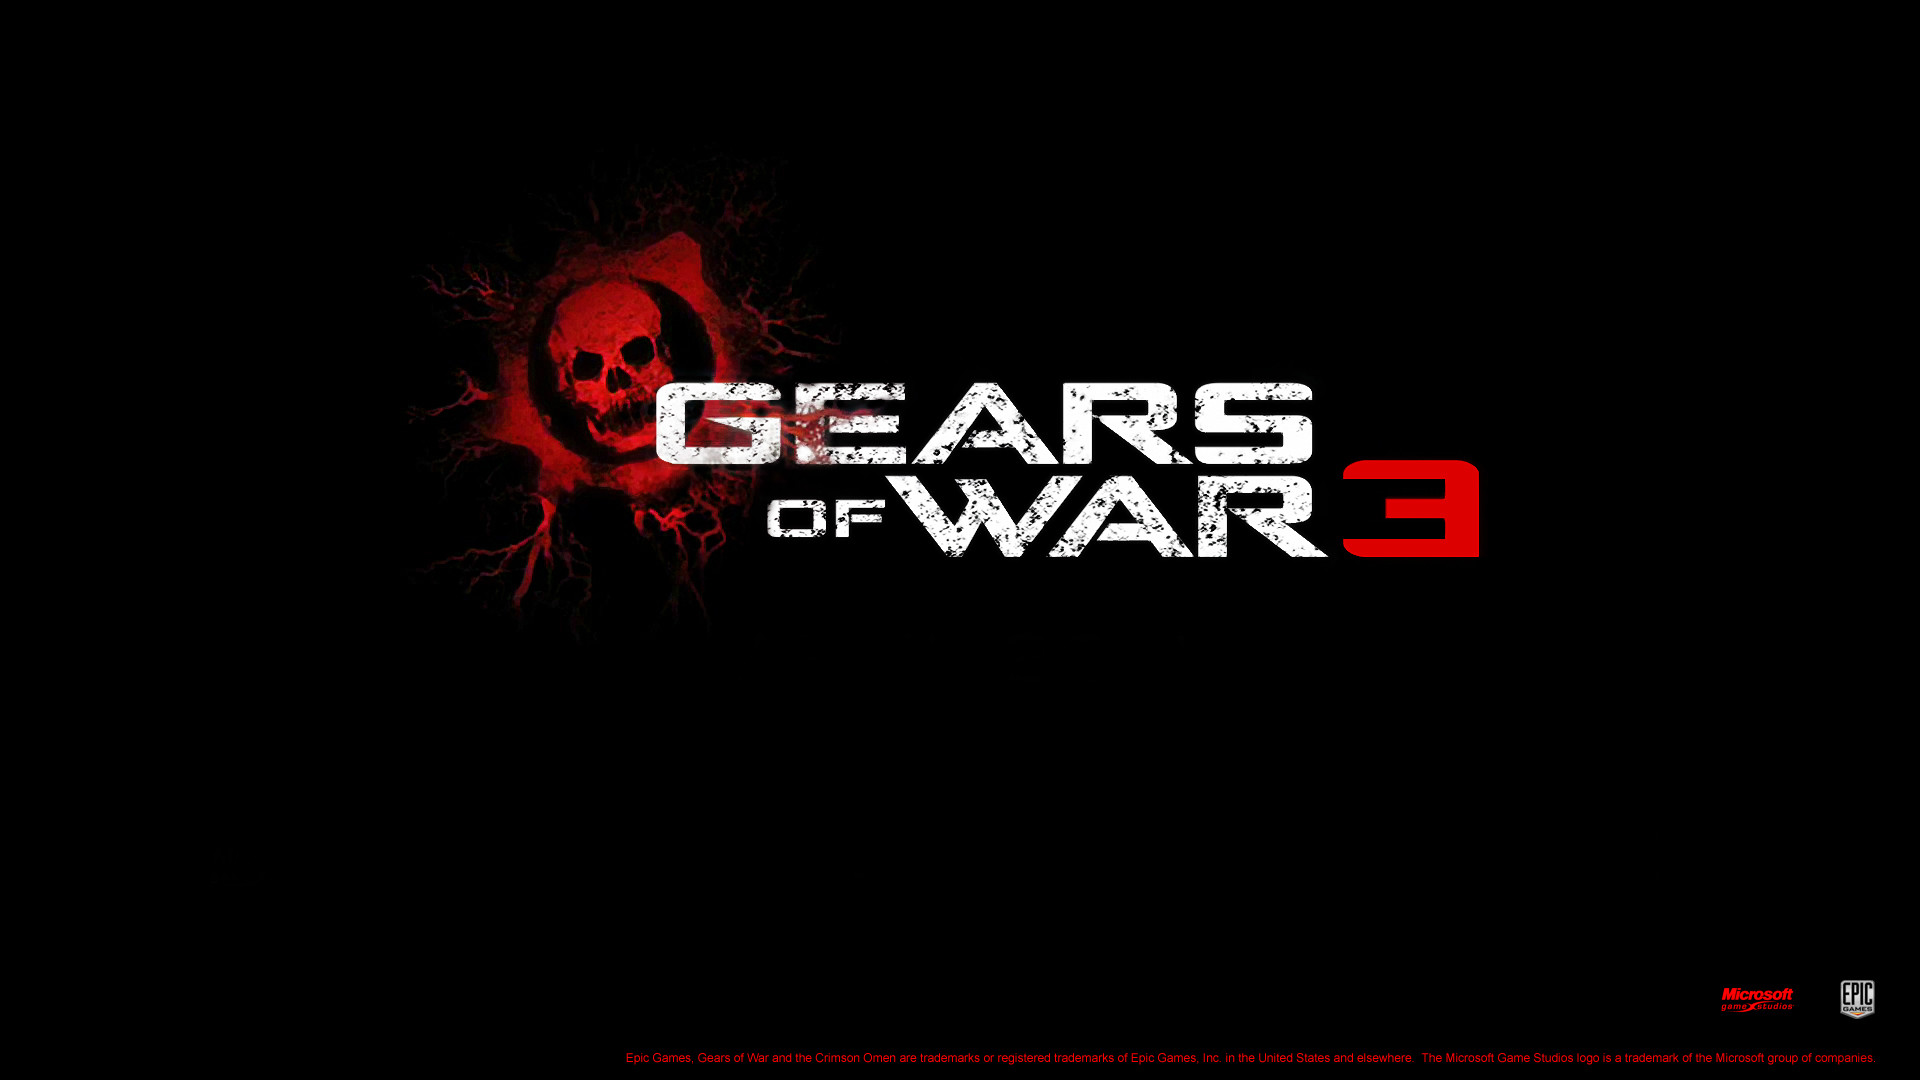 1920x1080 Gears of War 3 Wallpaper 2